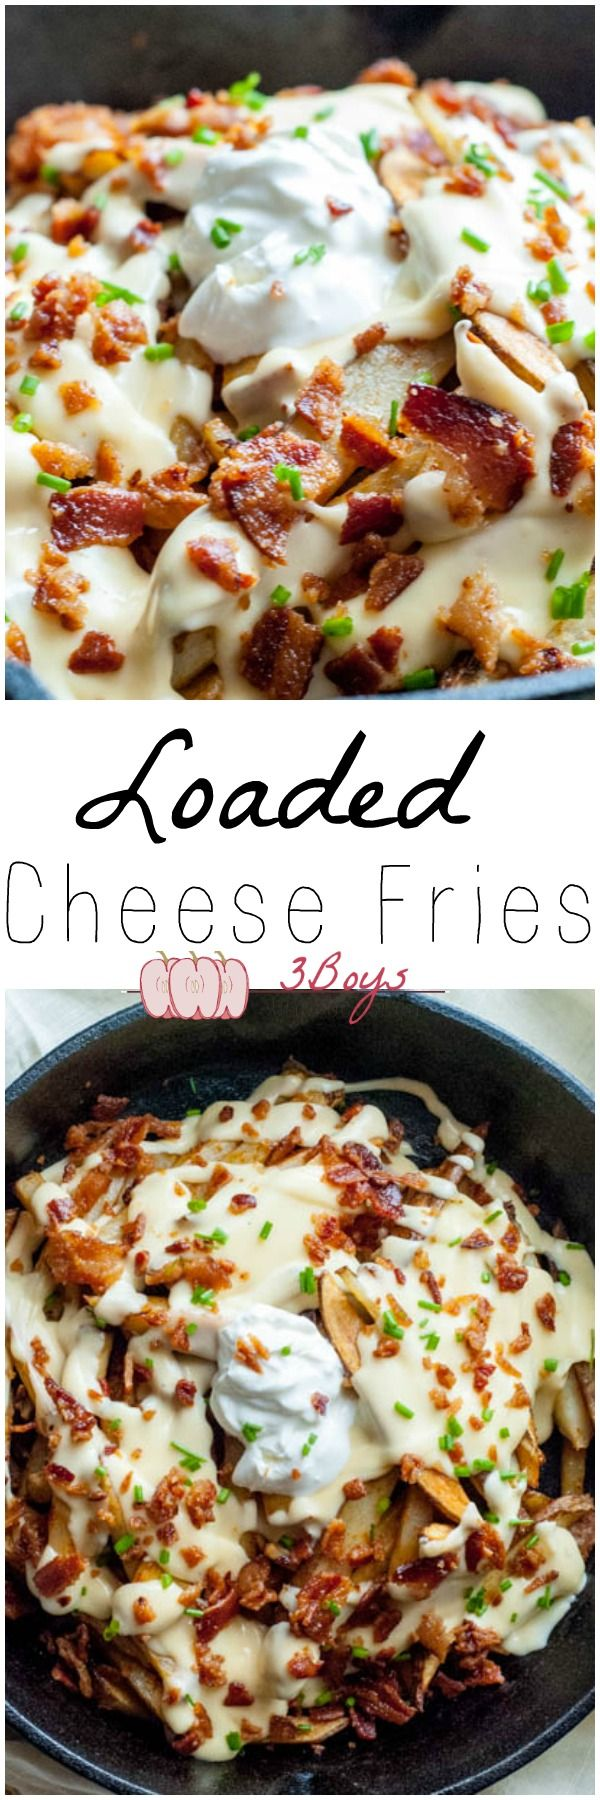 Loaded Cheese Fries made 100% from scratch. Food, appetizer, party food, lunch side, dinner side www.3boysunprocessed.com